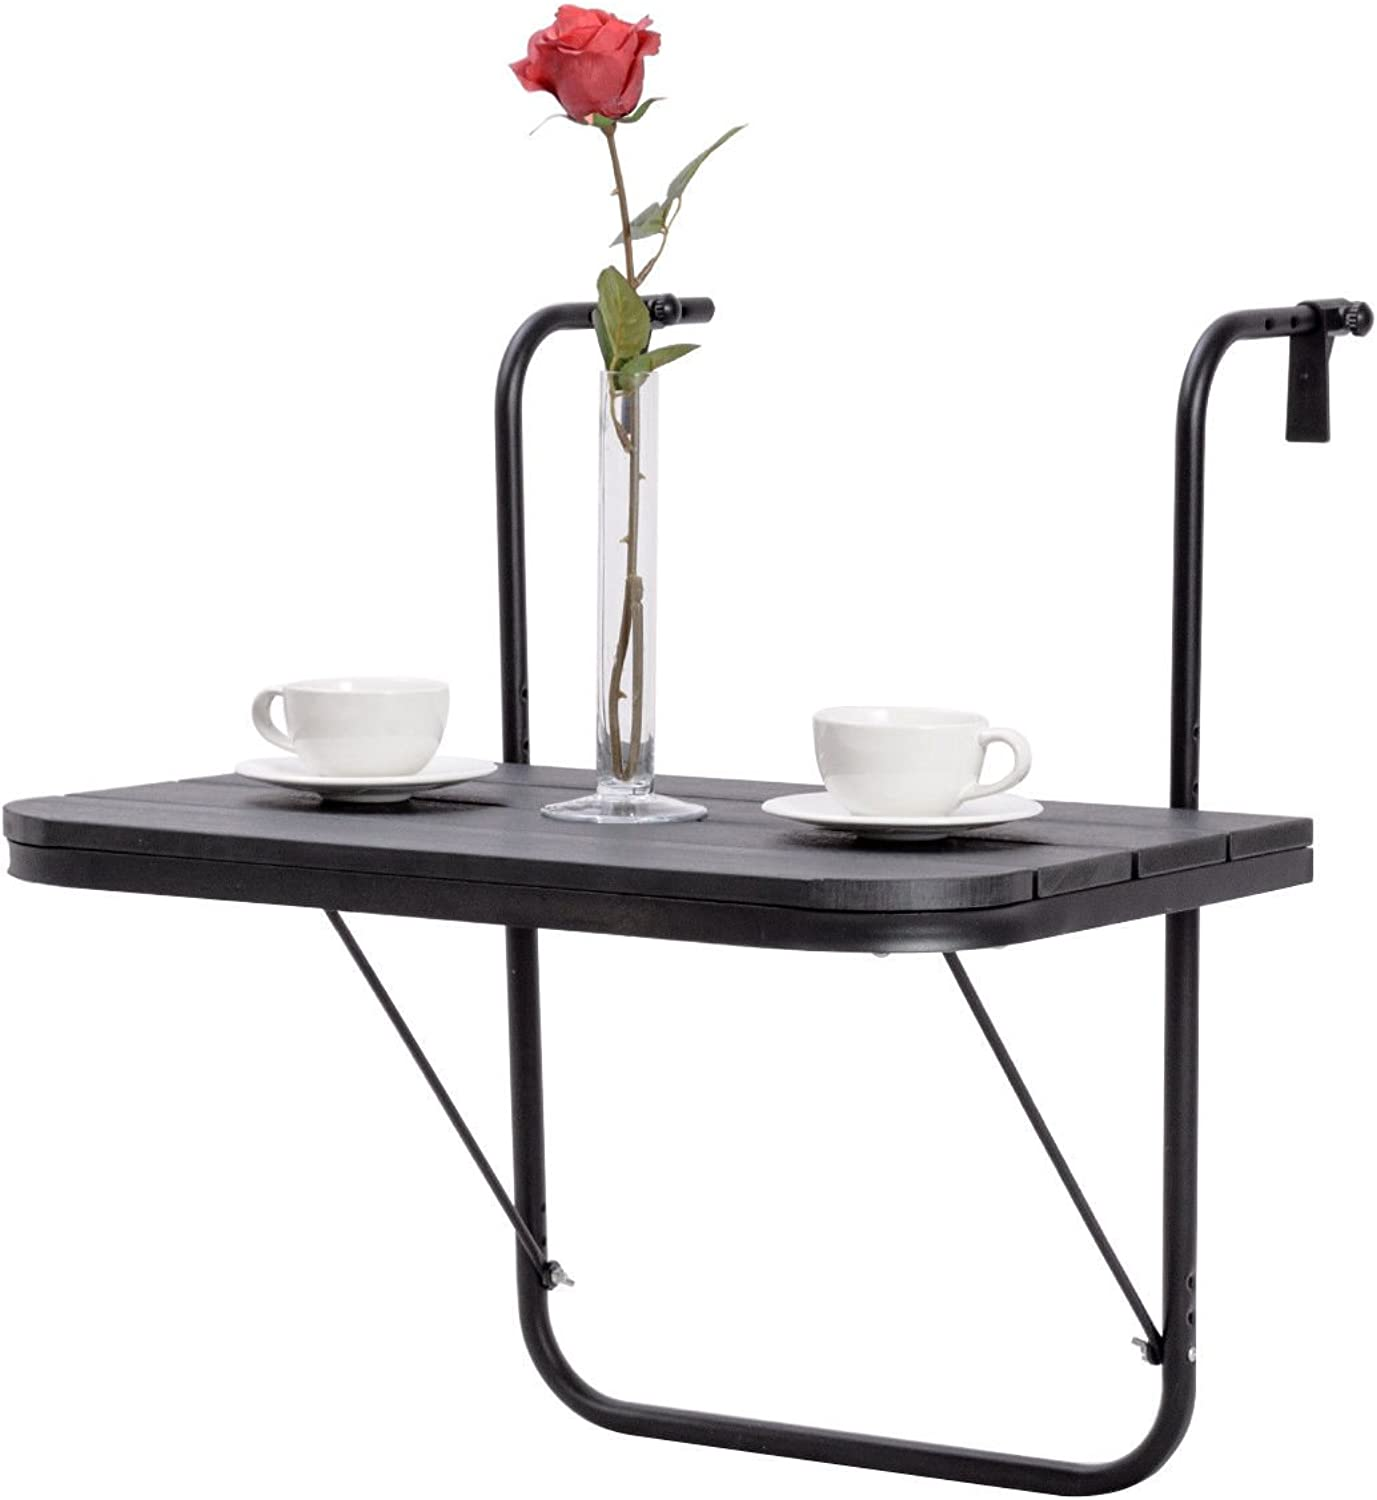 Adjustable Folding Deck Table Balcony Patio Serving Table Stand Hanging Railing